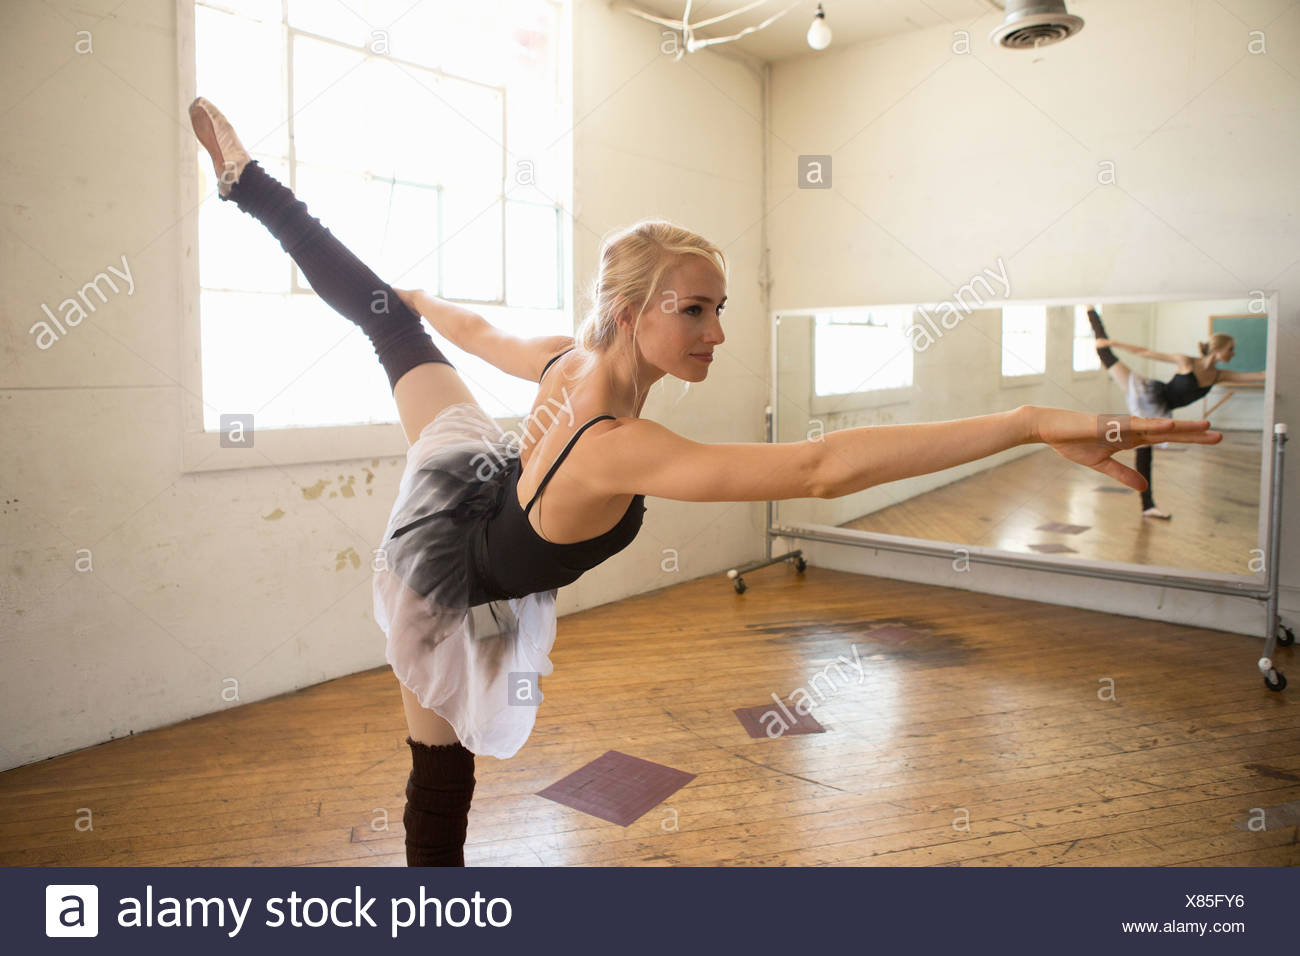 Danseur de Ballet sur une jambe en studio Photo Stock